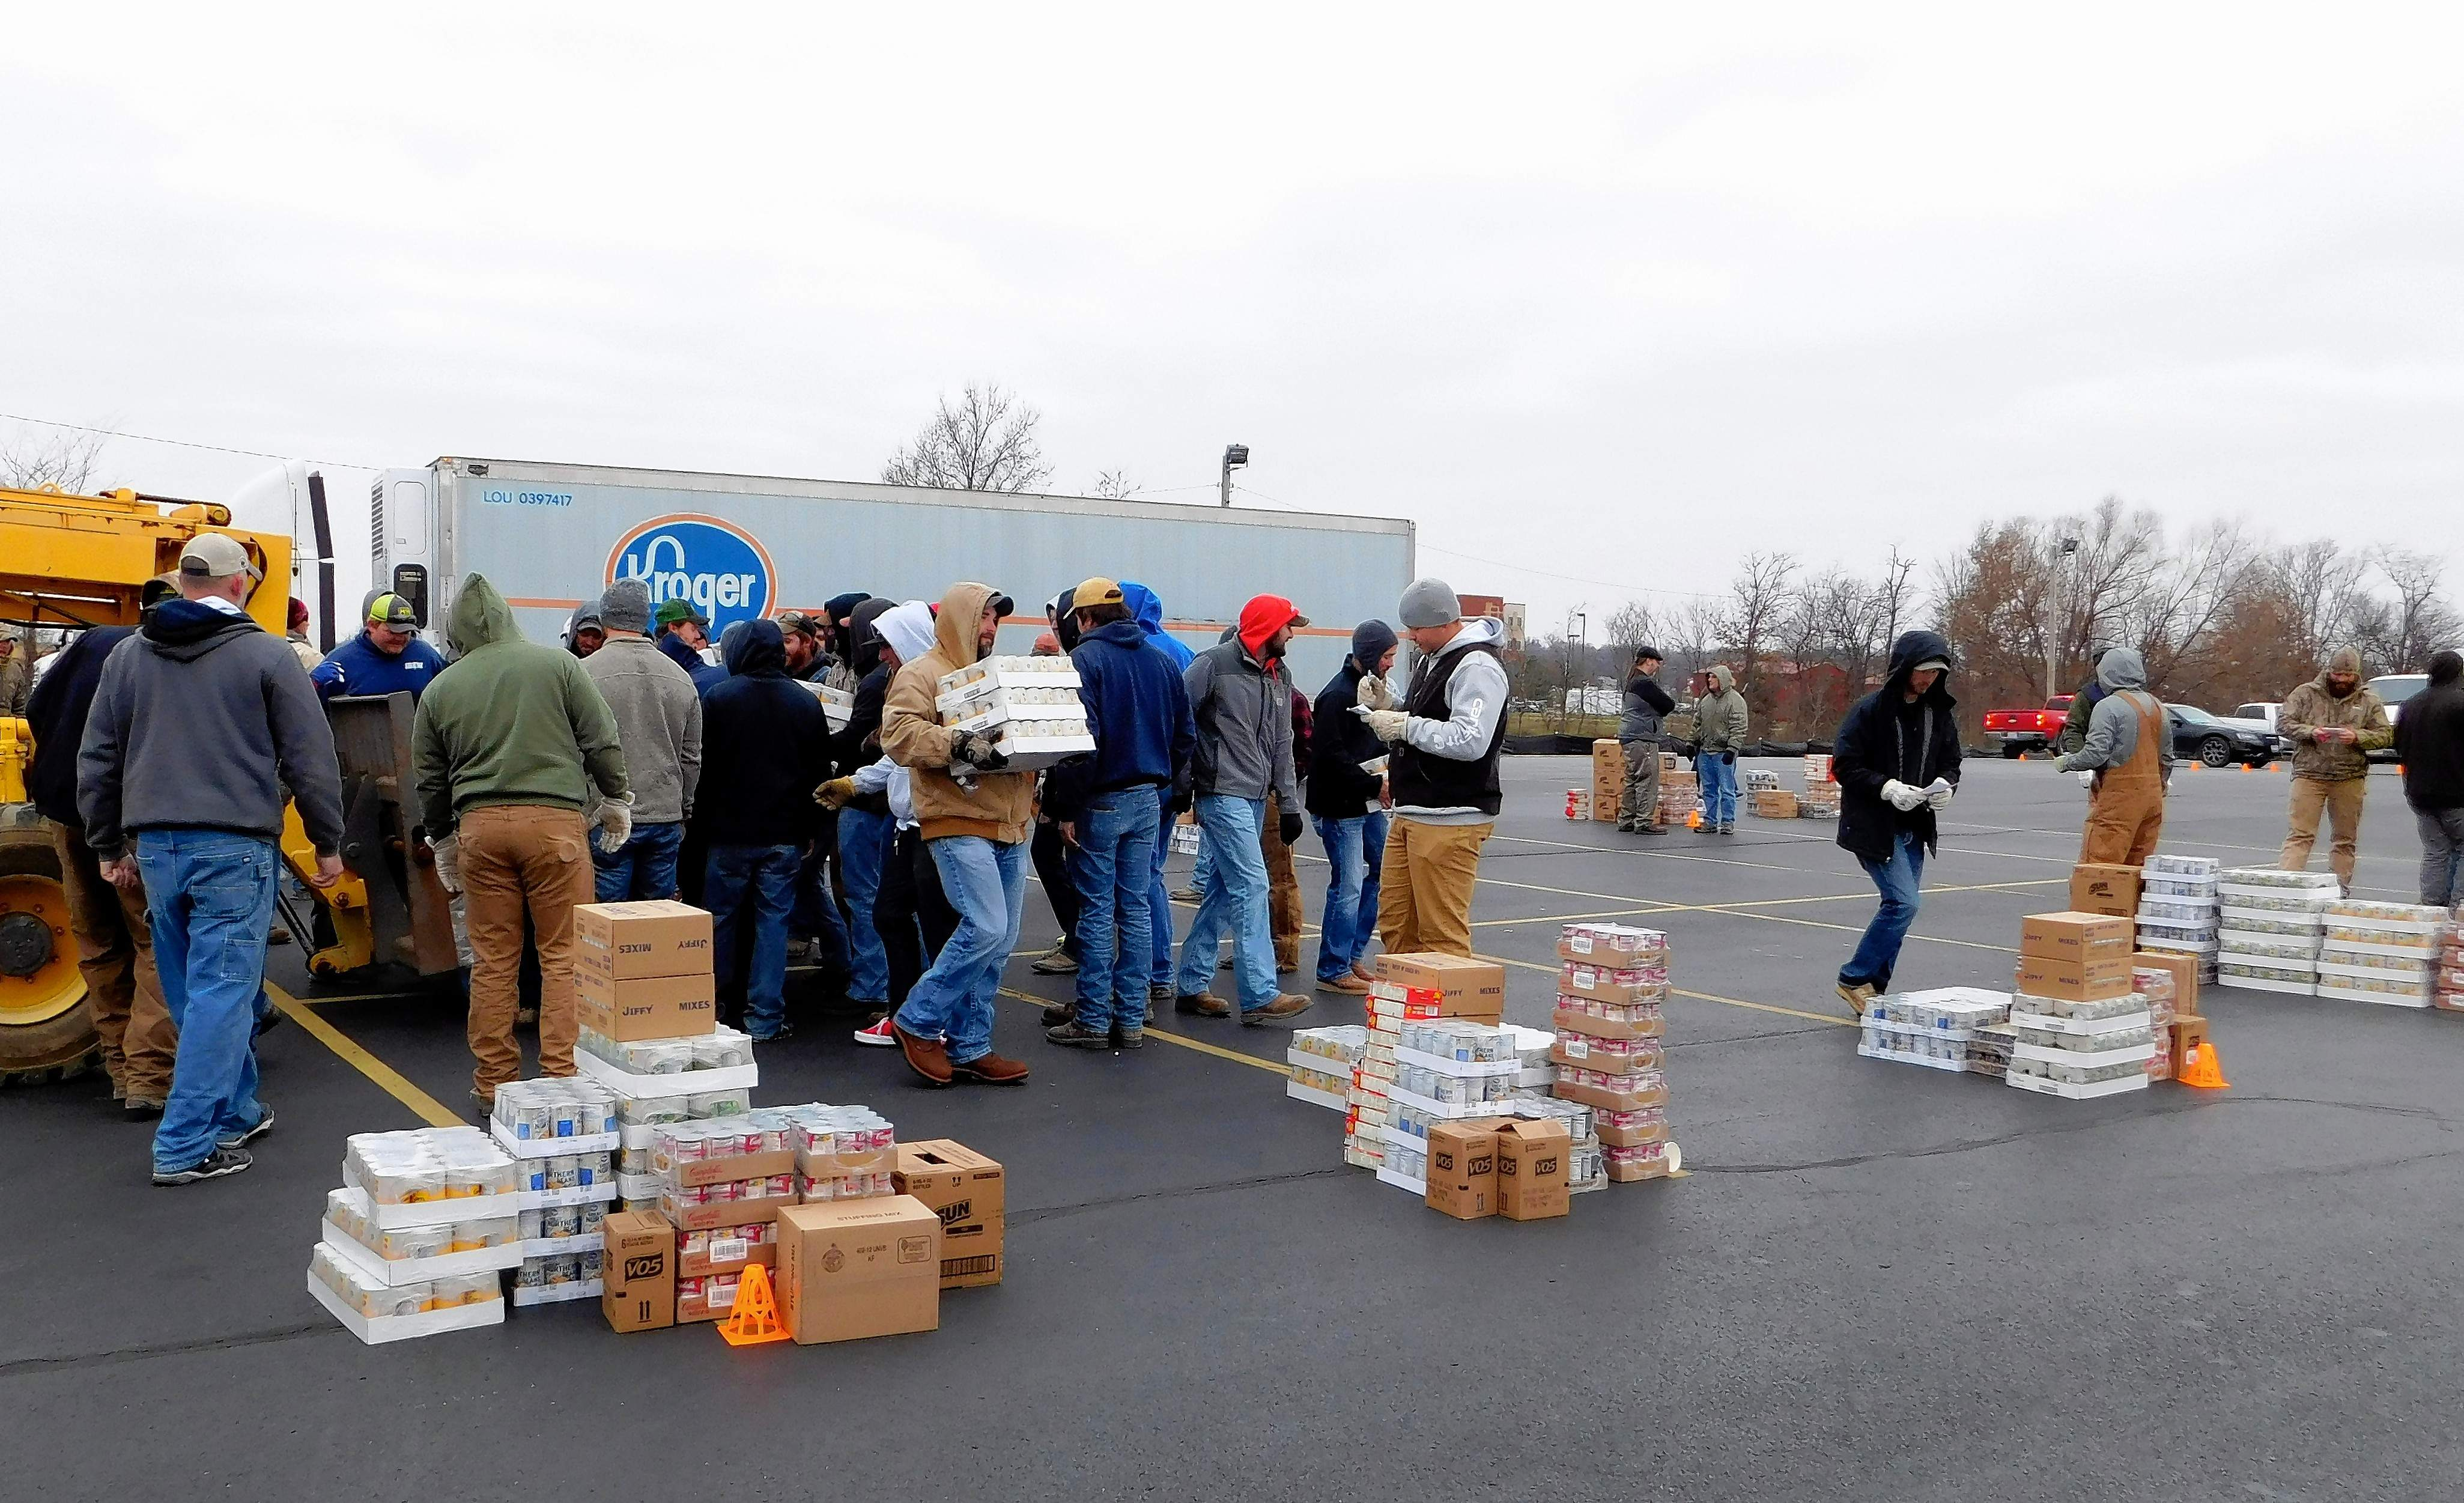 More than 100 volunteers sort and load supplies bound for area food pantries. The partnership provided around $24,000 to those in need.